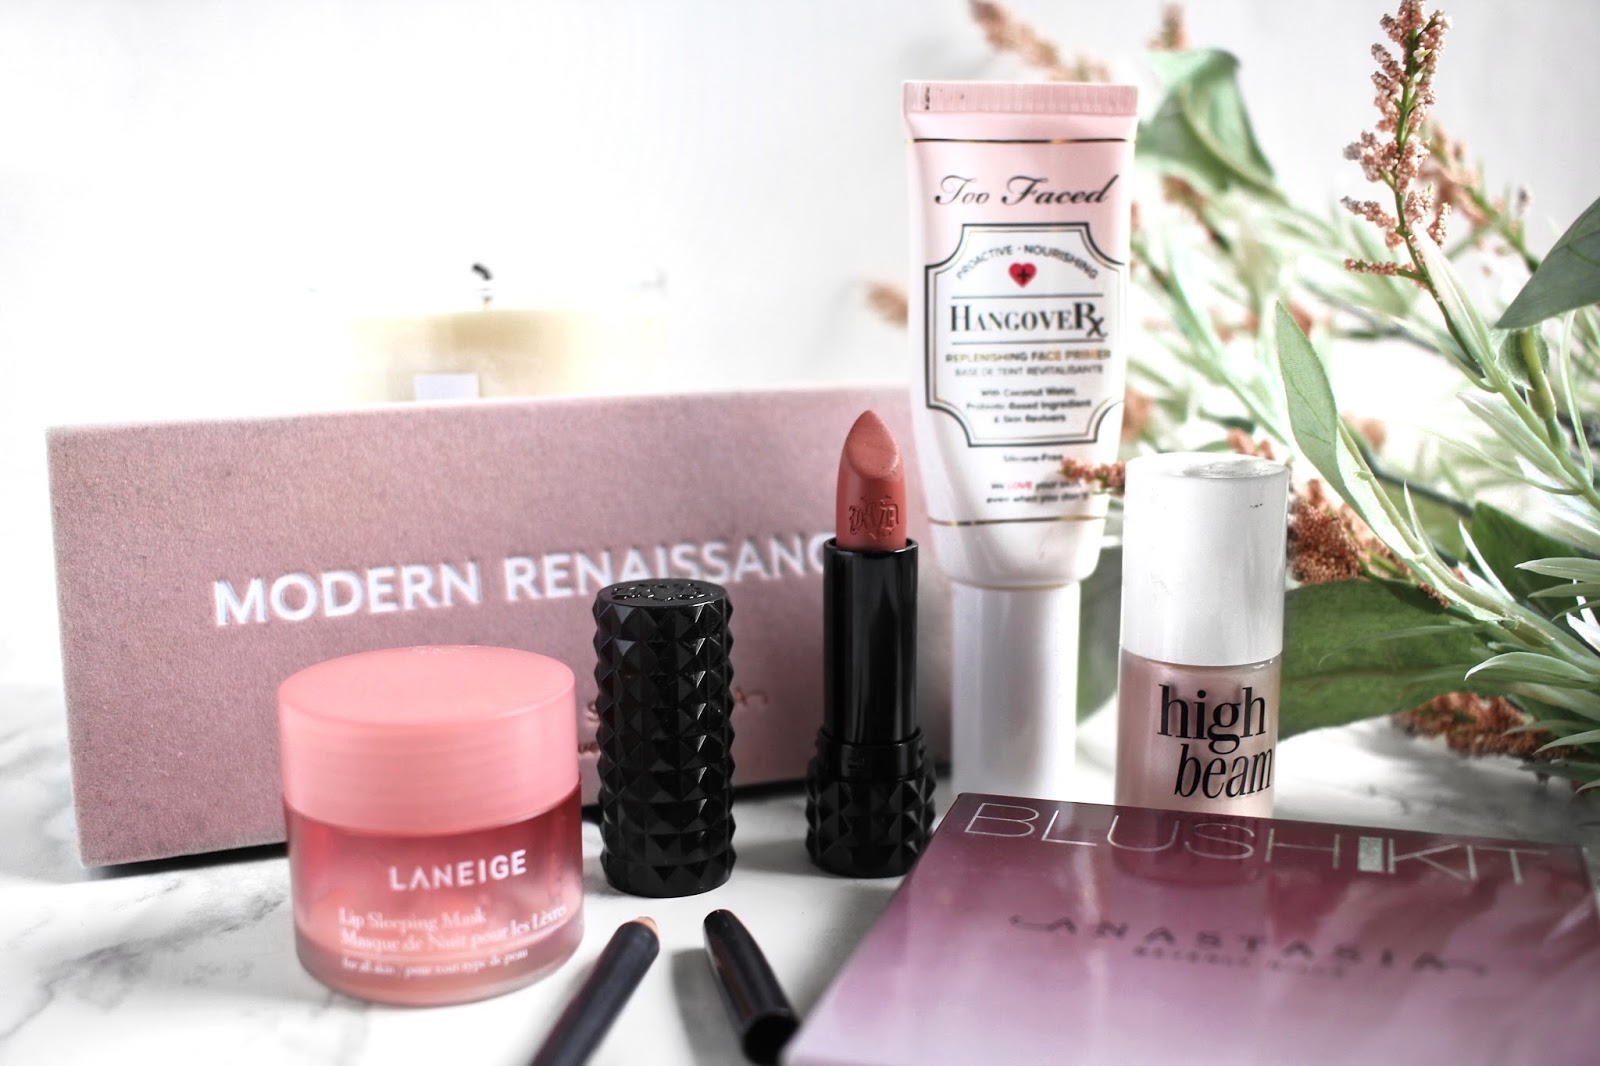 A Very Pink February ft. Anastasia Beverly Hills, Laneige, Kat Von D, Too Faced, Benefit, MAC || The Glam Surge